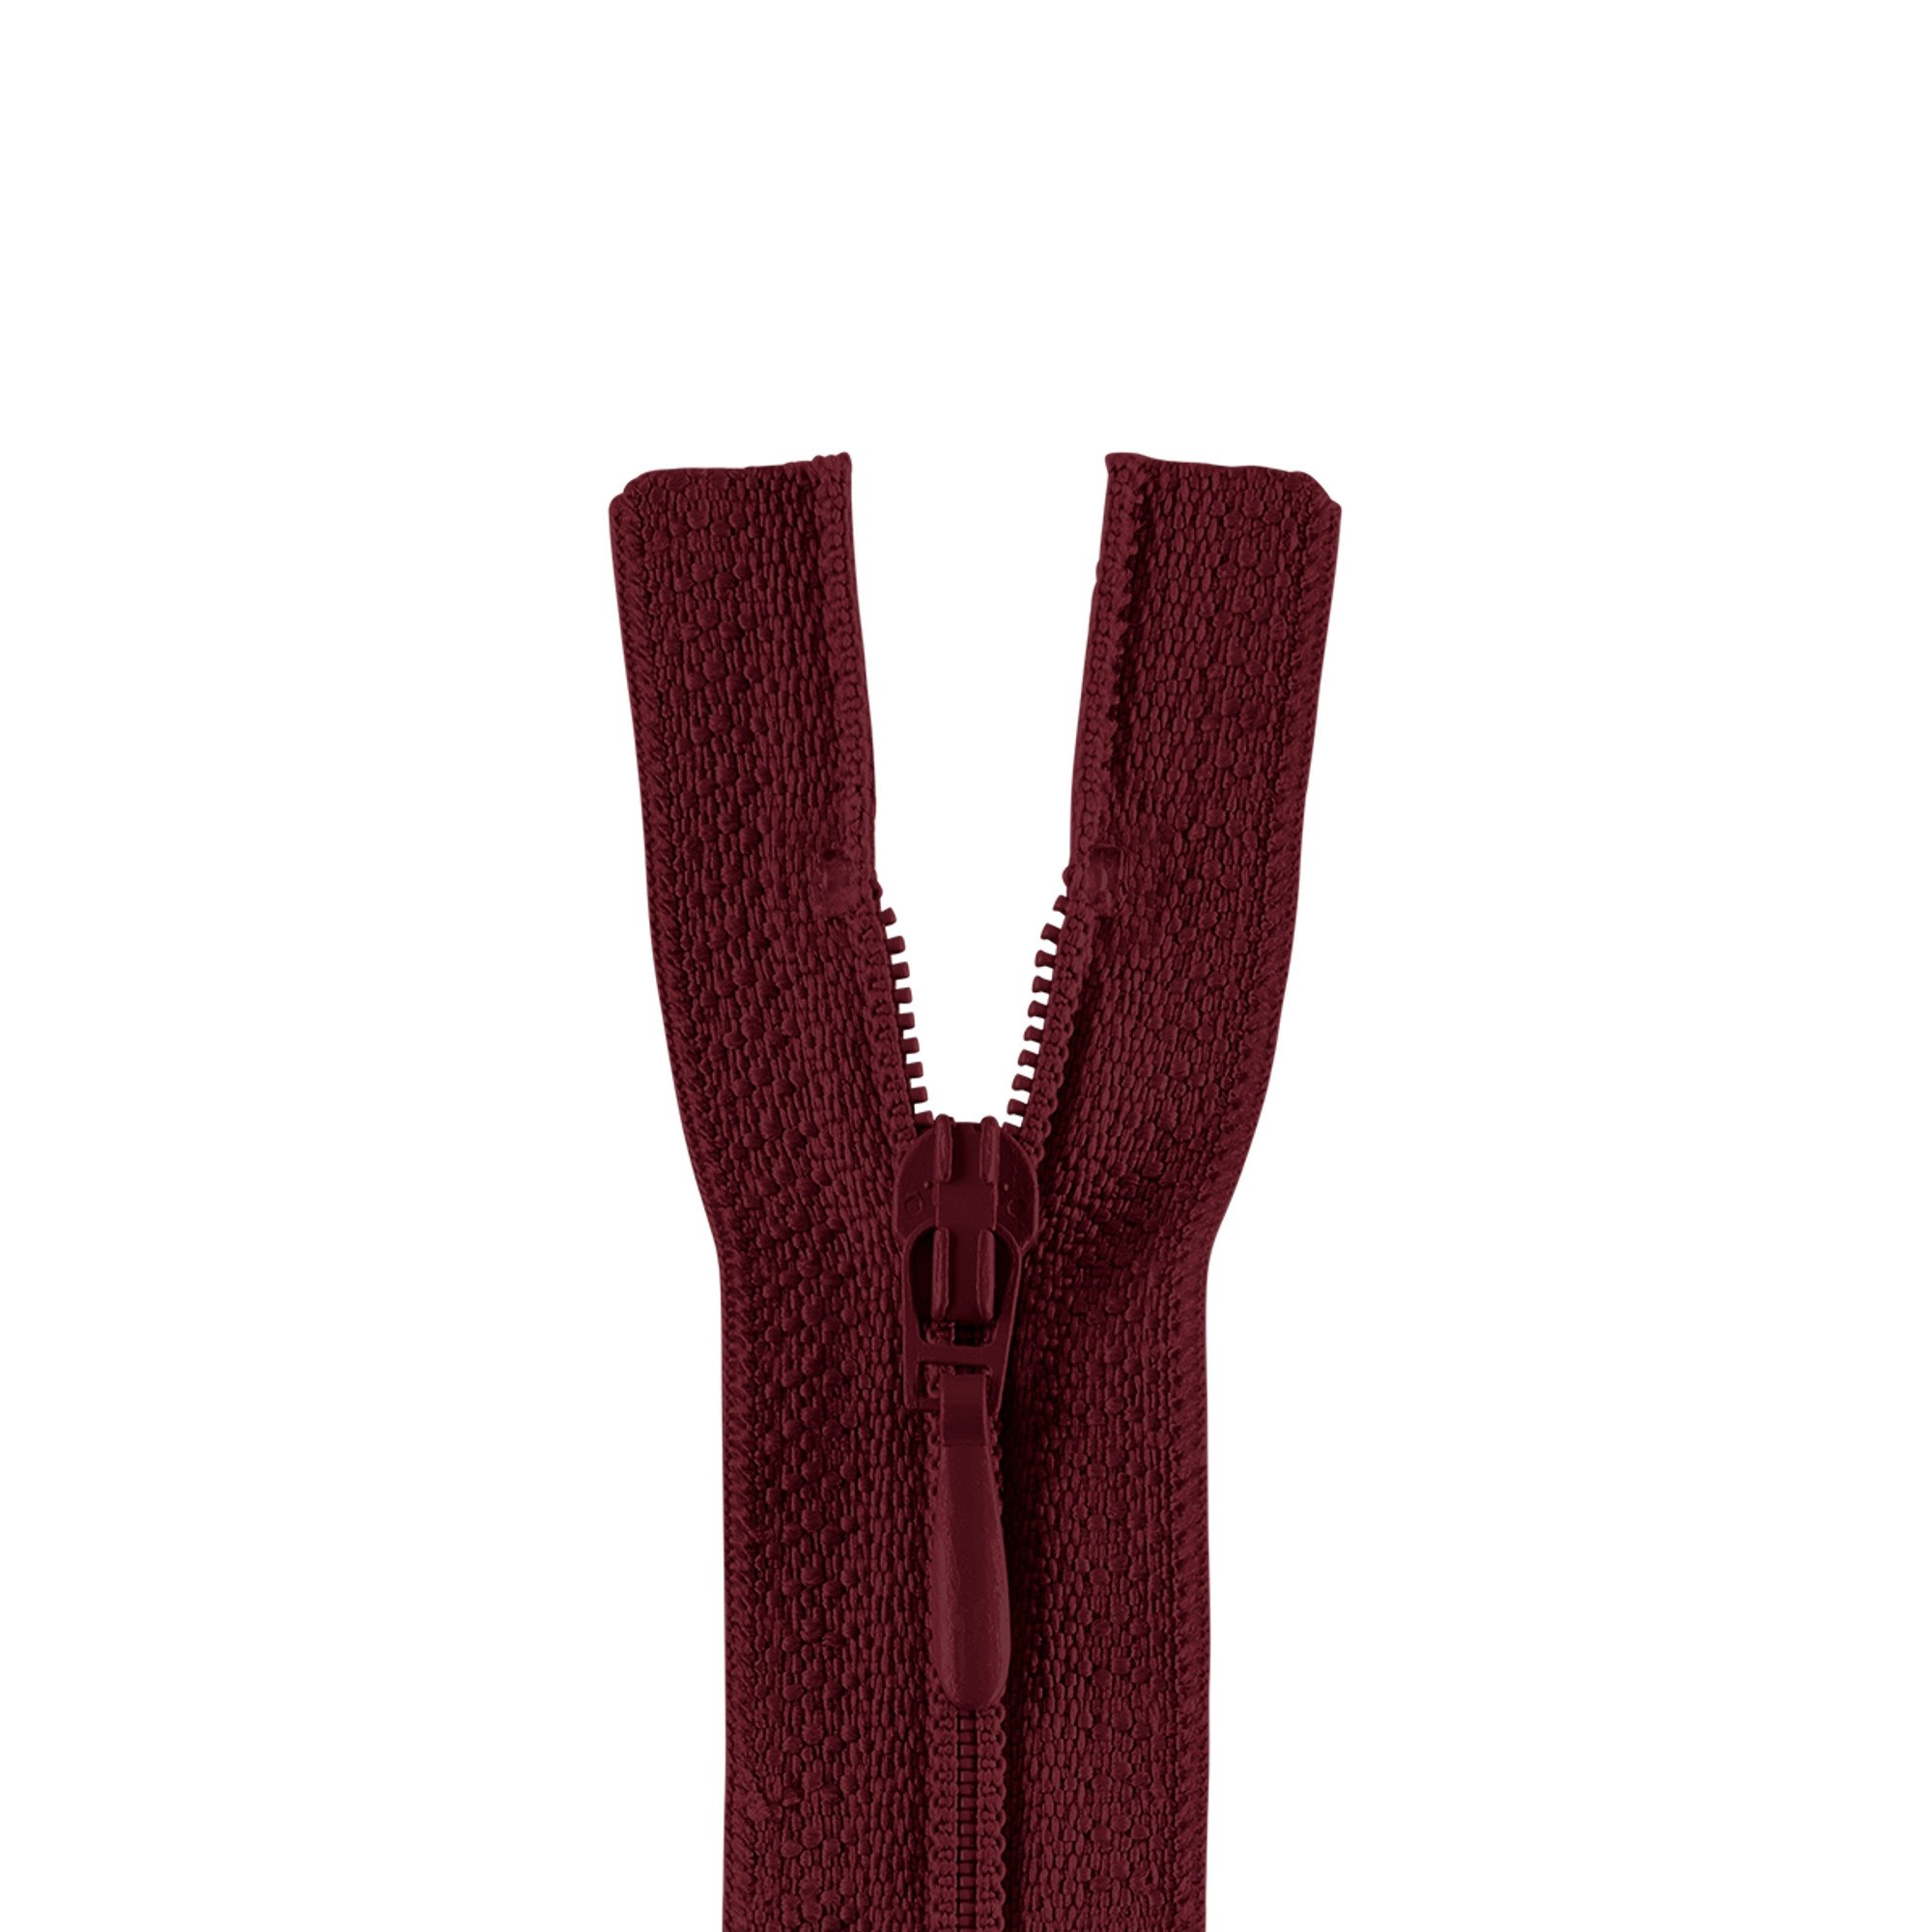 zipper 4800, burgundy